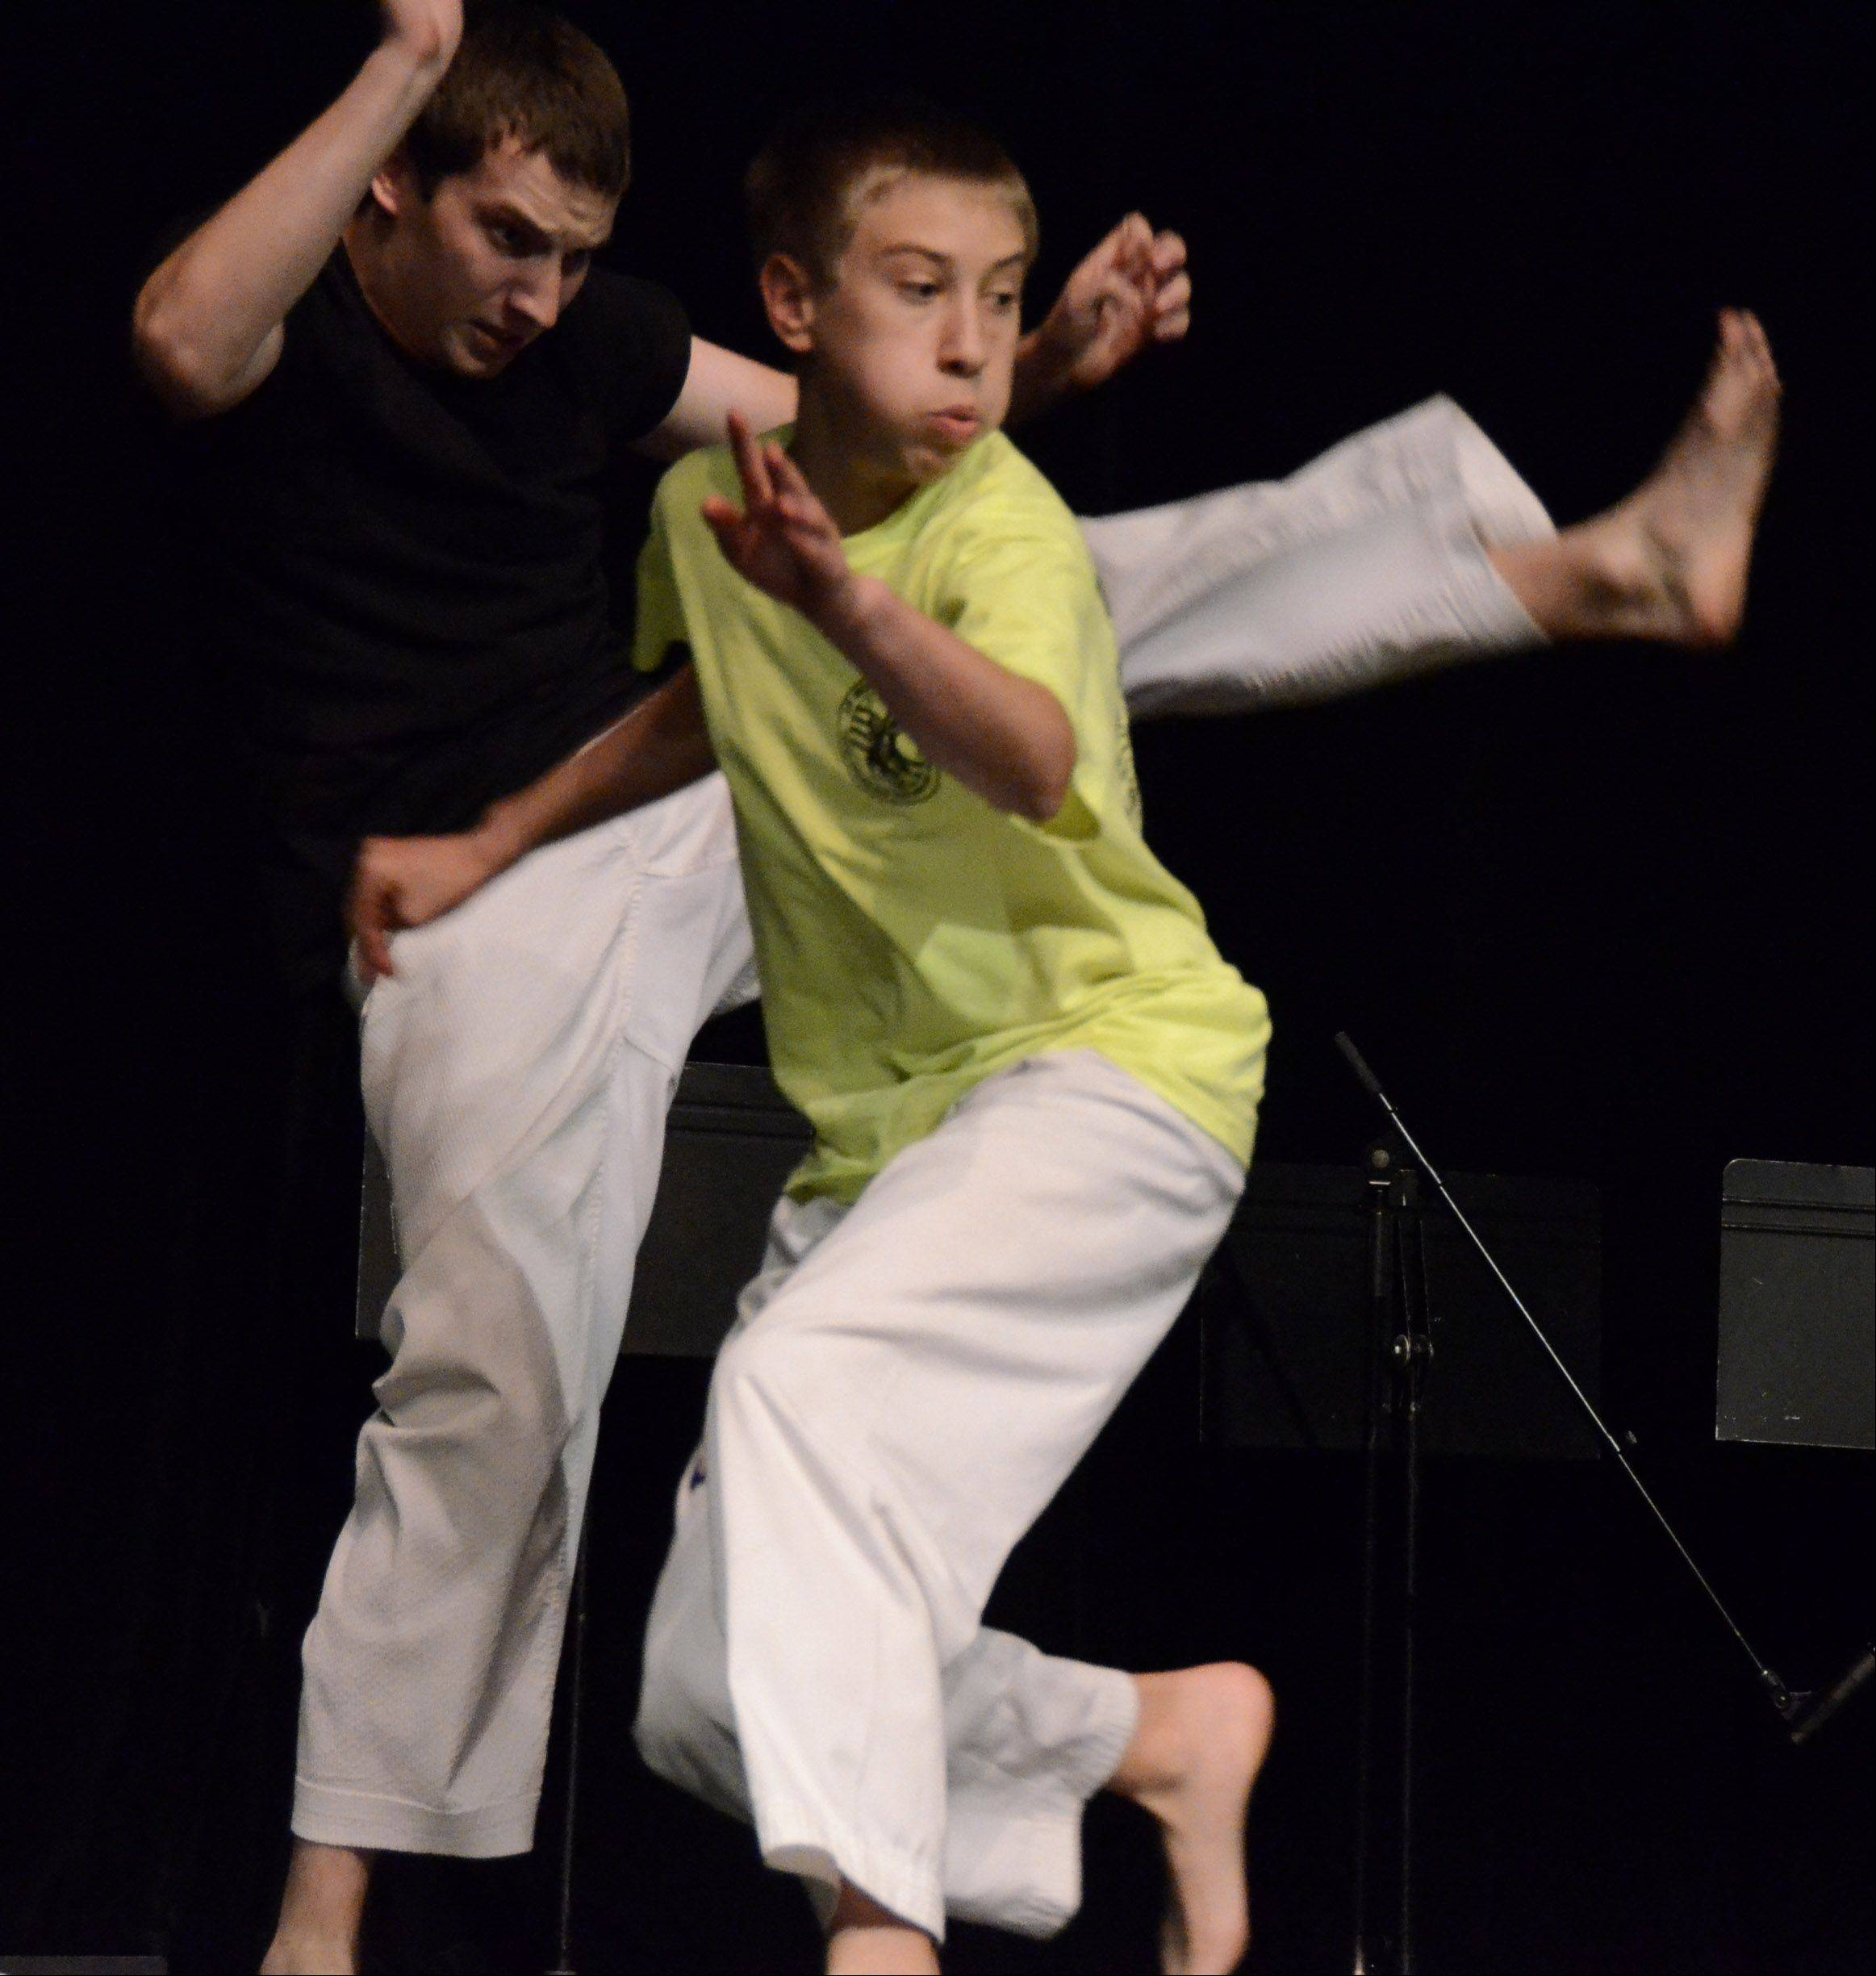 The judges at Suburban Chicago's Got Talent auditions were impressed with the martial arts fighting of Rory Wood, 18, and his brother Casey, 15, both of Palatine.